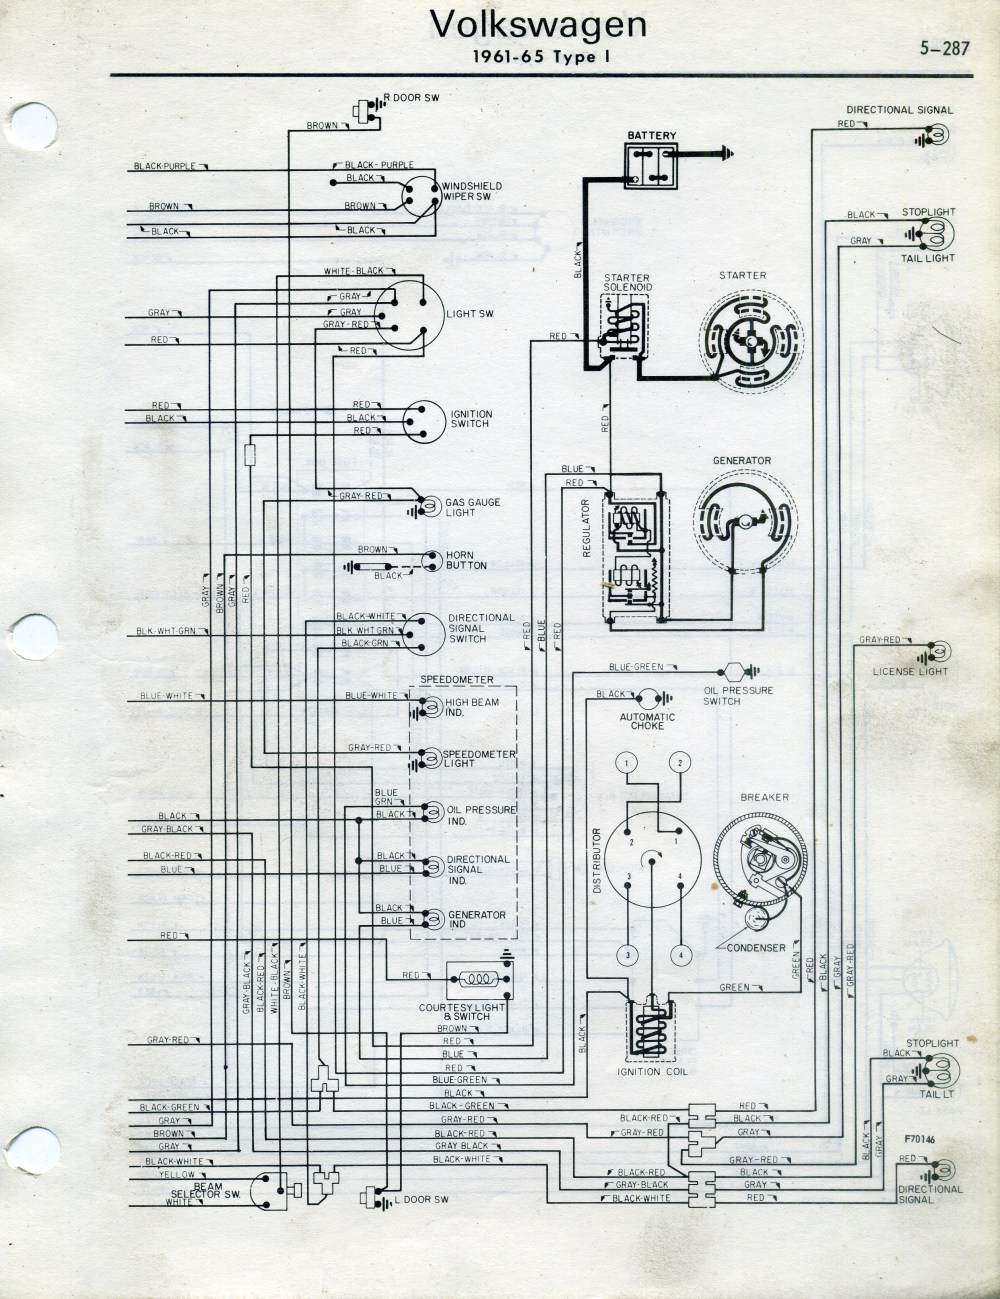 medium resolution of 1961 65 from national automotive service